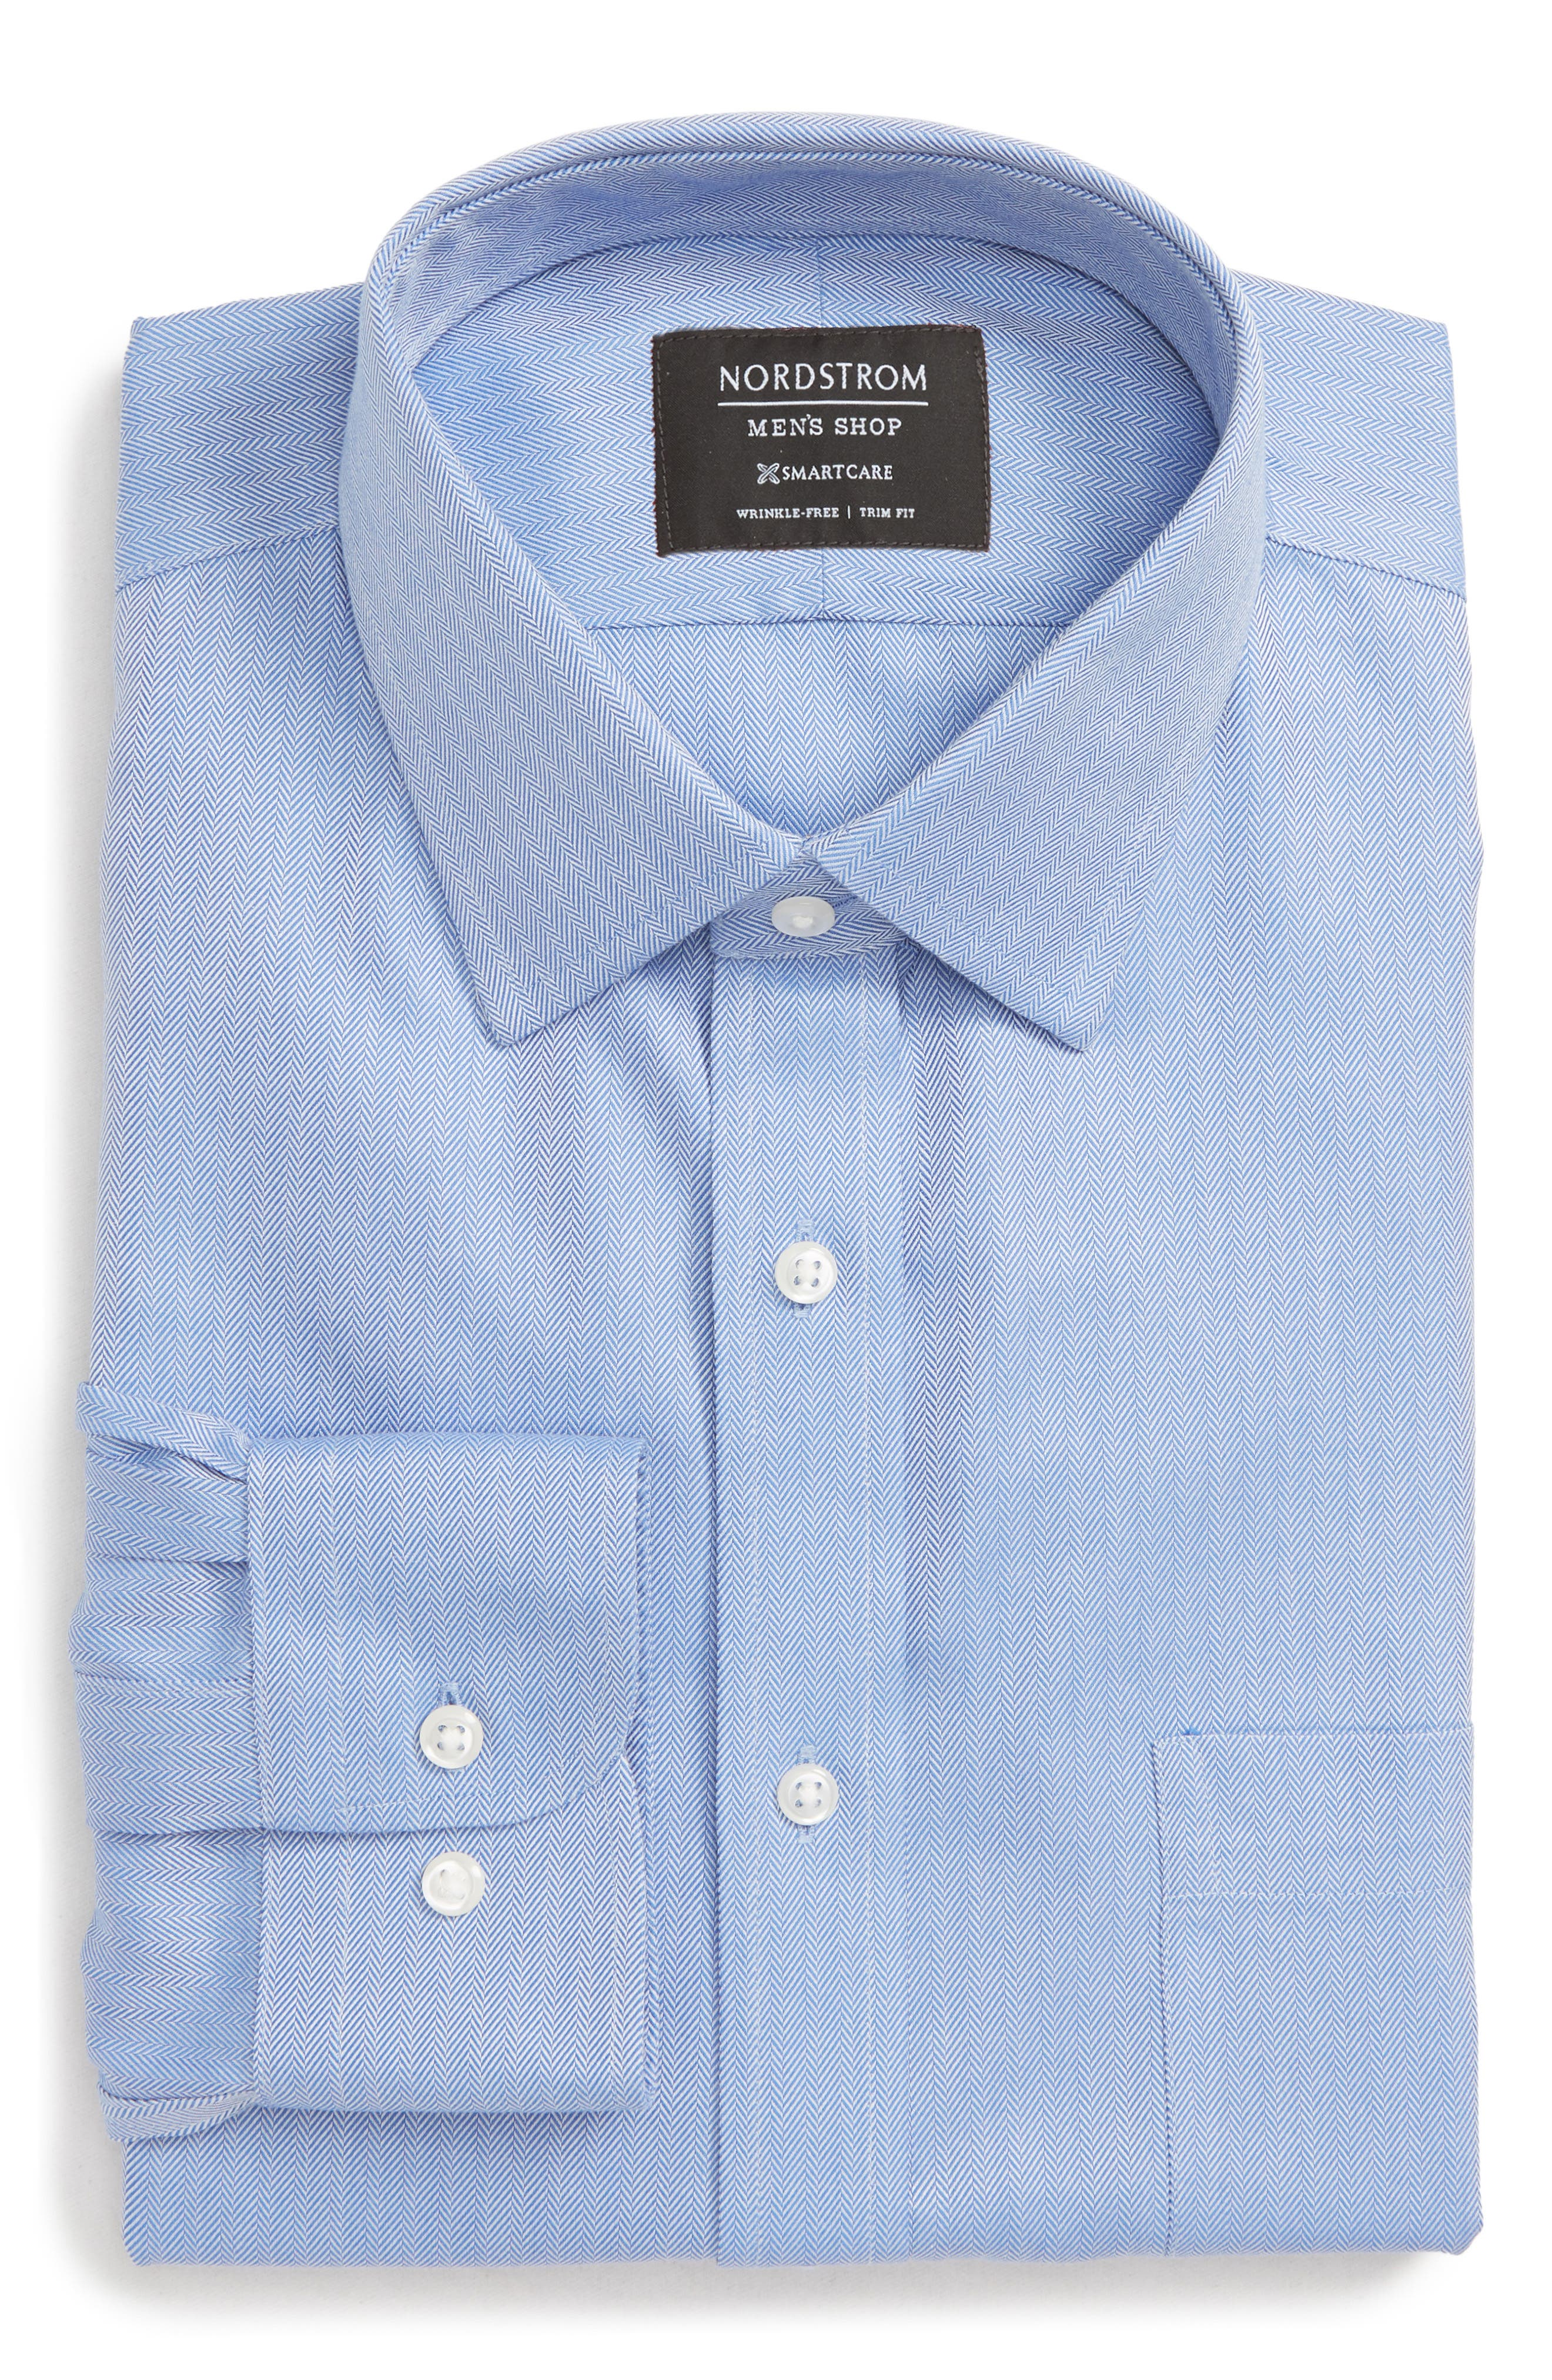 Nordstrom Shop Smartcare(TM) Trim Fit Herringbone Dress Shirt - Blue